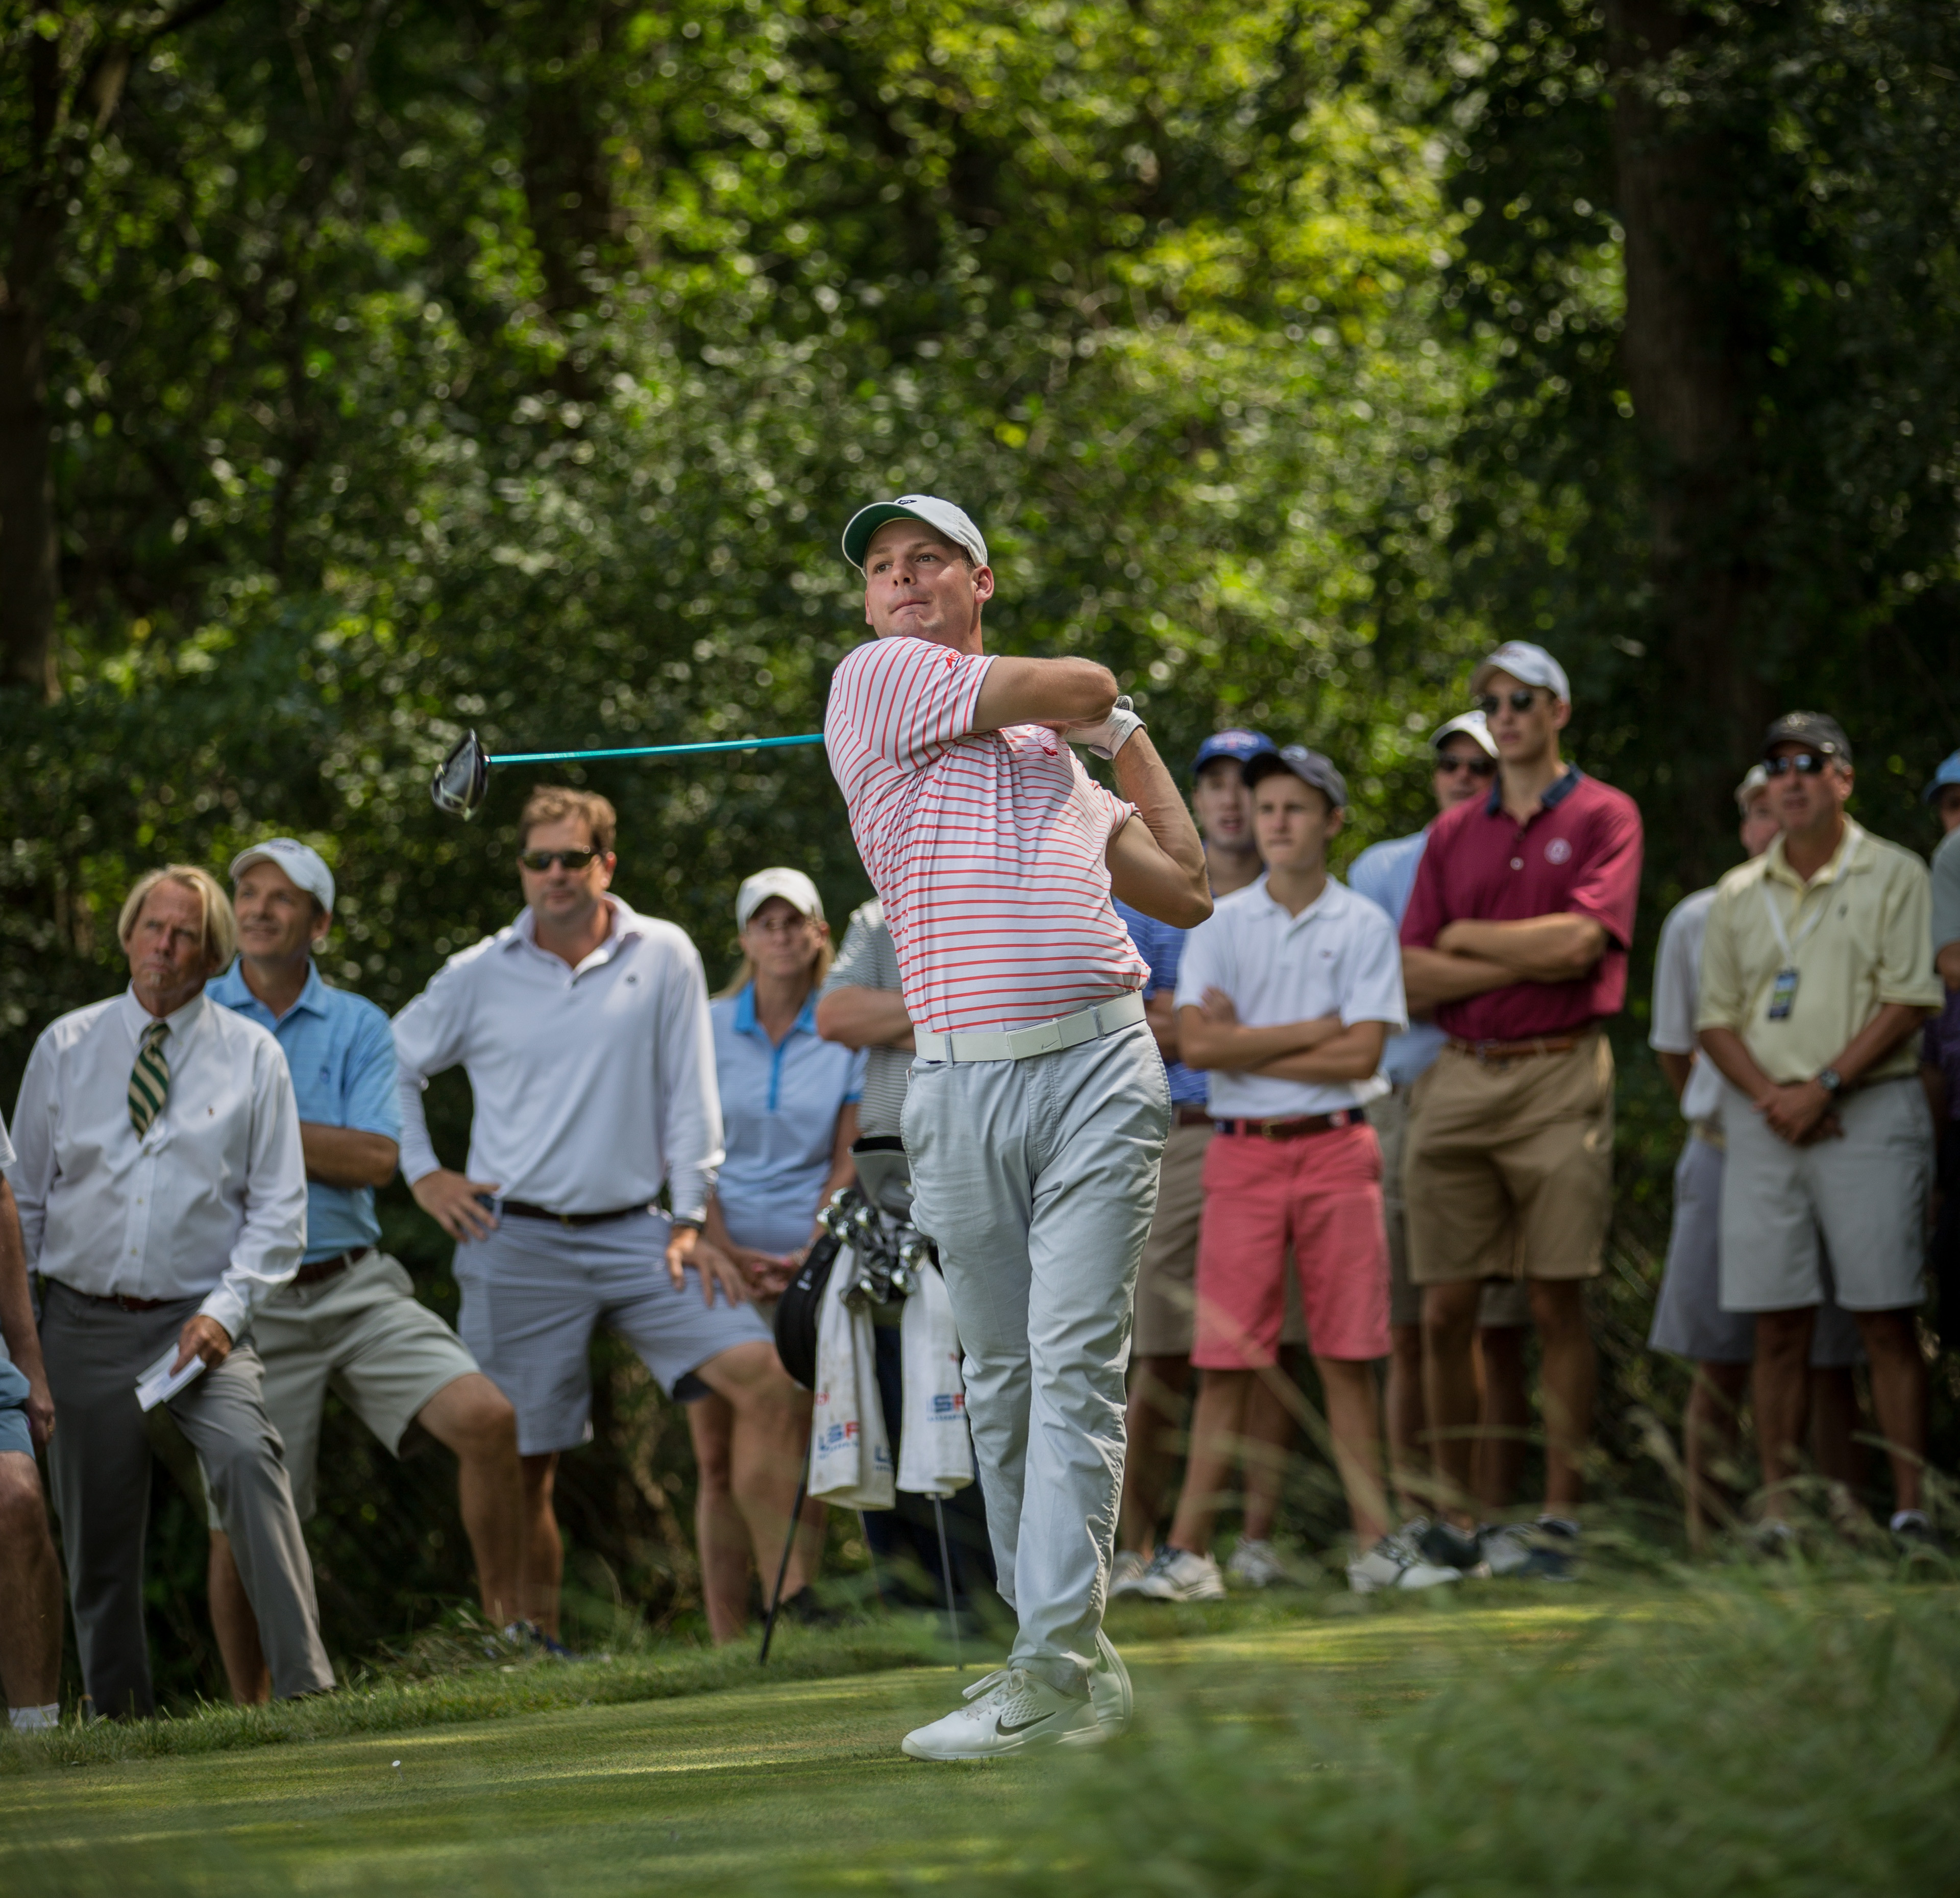 Redman Advances to Final 16 of US Amateur